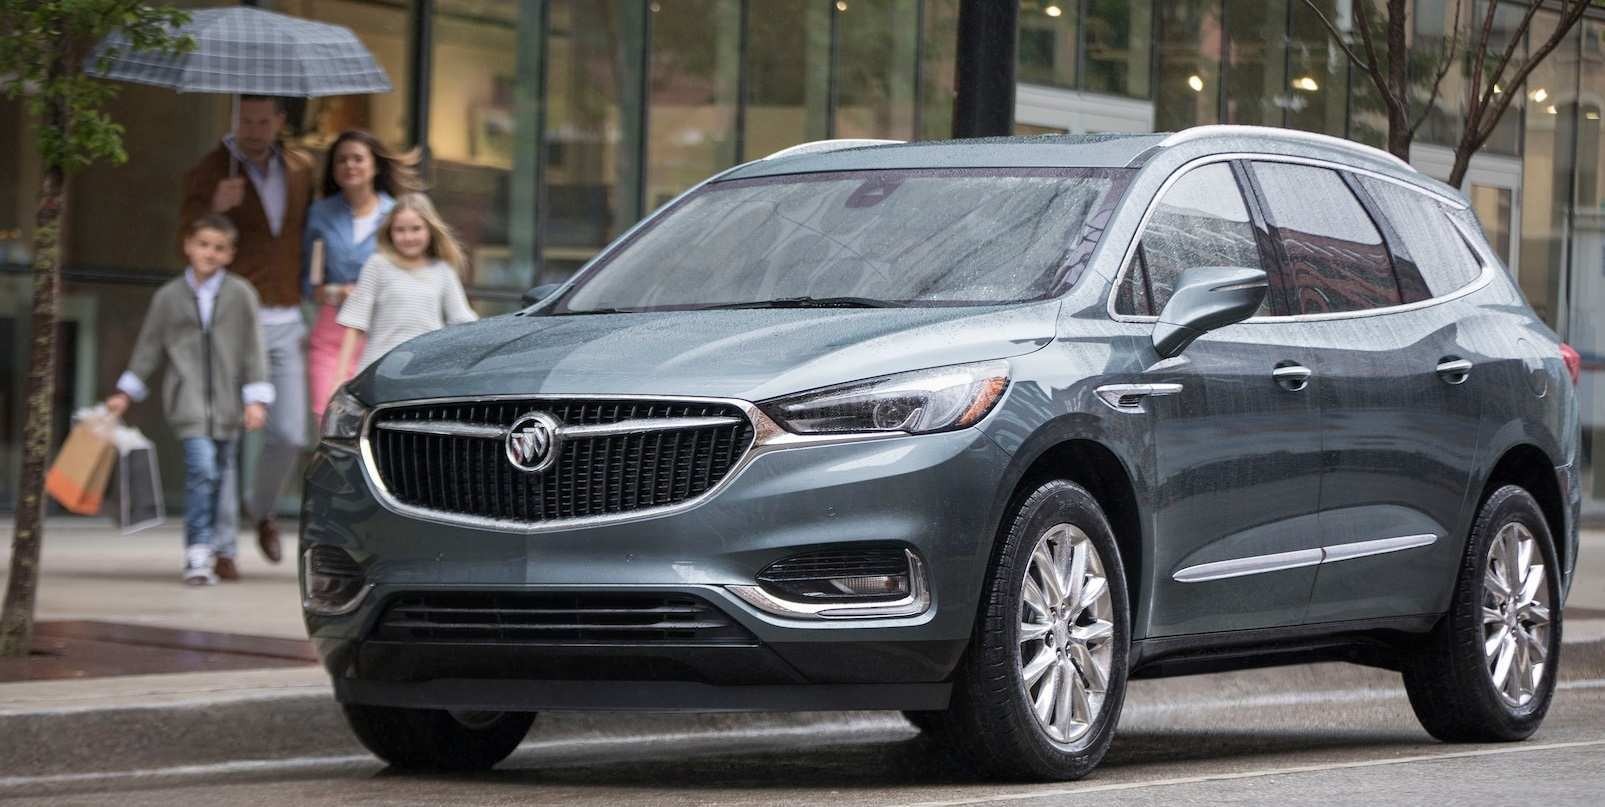 39 Great The Buick Encore 2019 Brochure Price Specs and Review by The Buick Encore 2019 Brochure Price